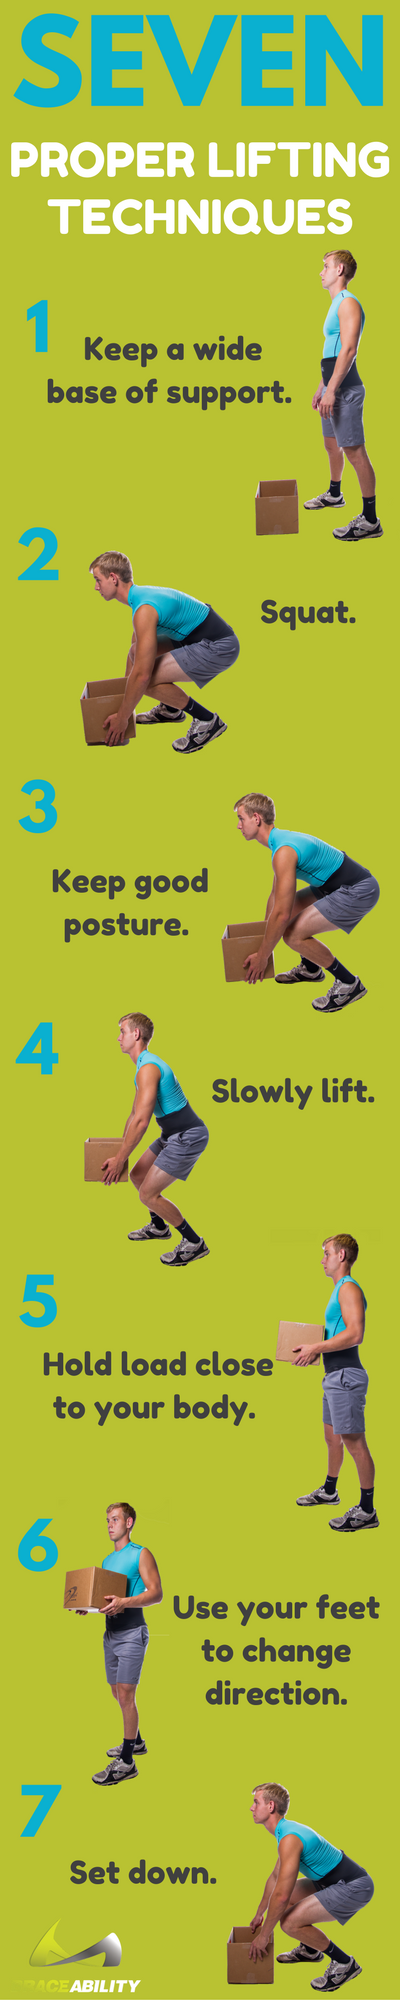 infographic on the proper lifting technique with with a back brace